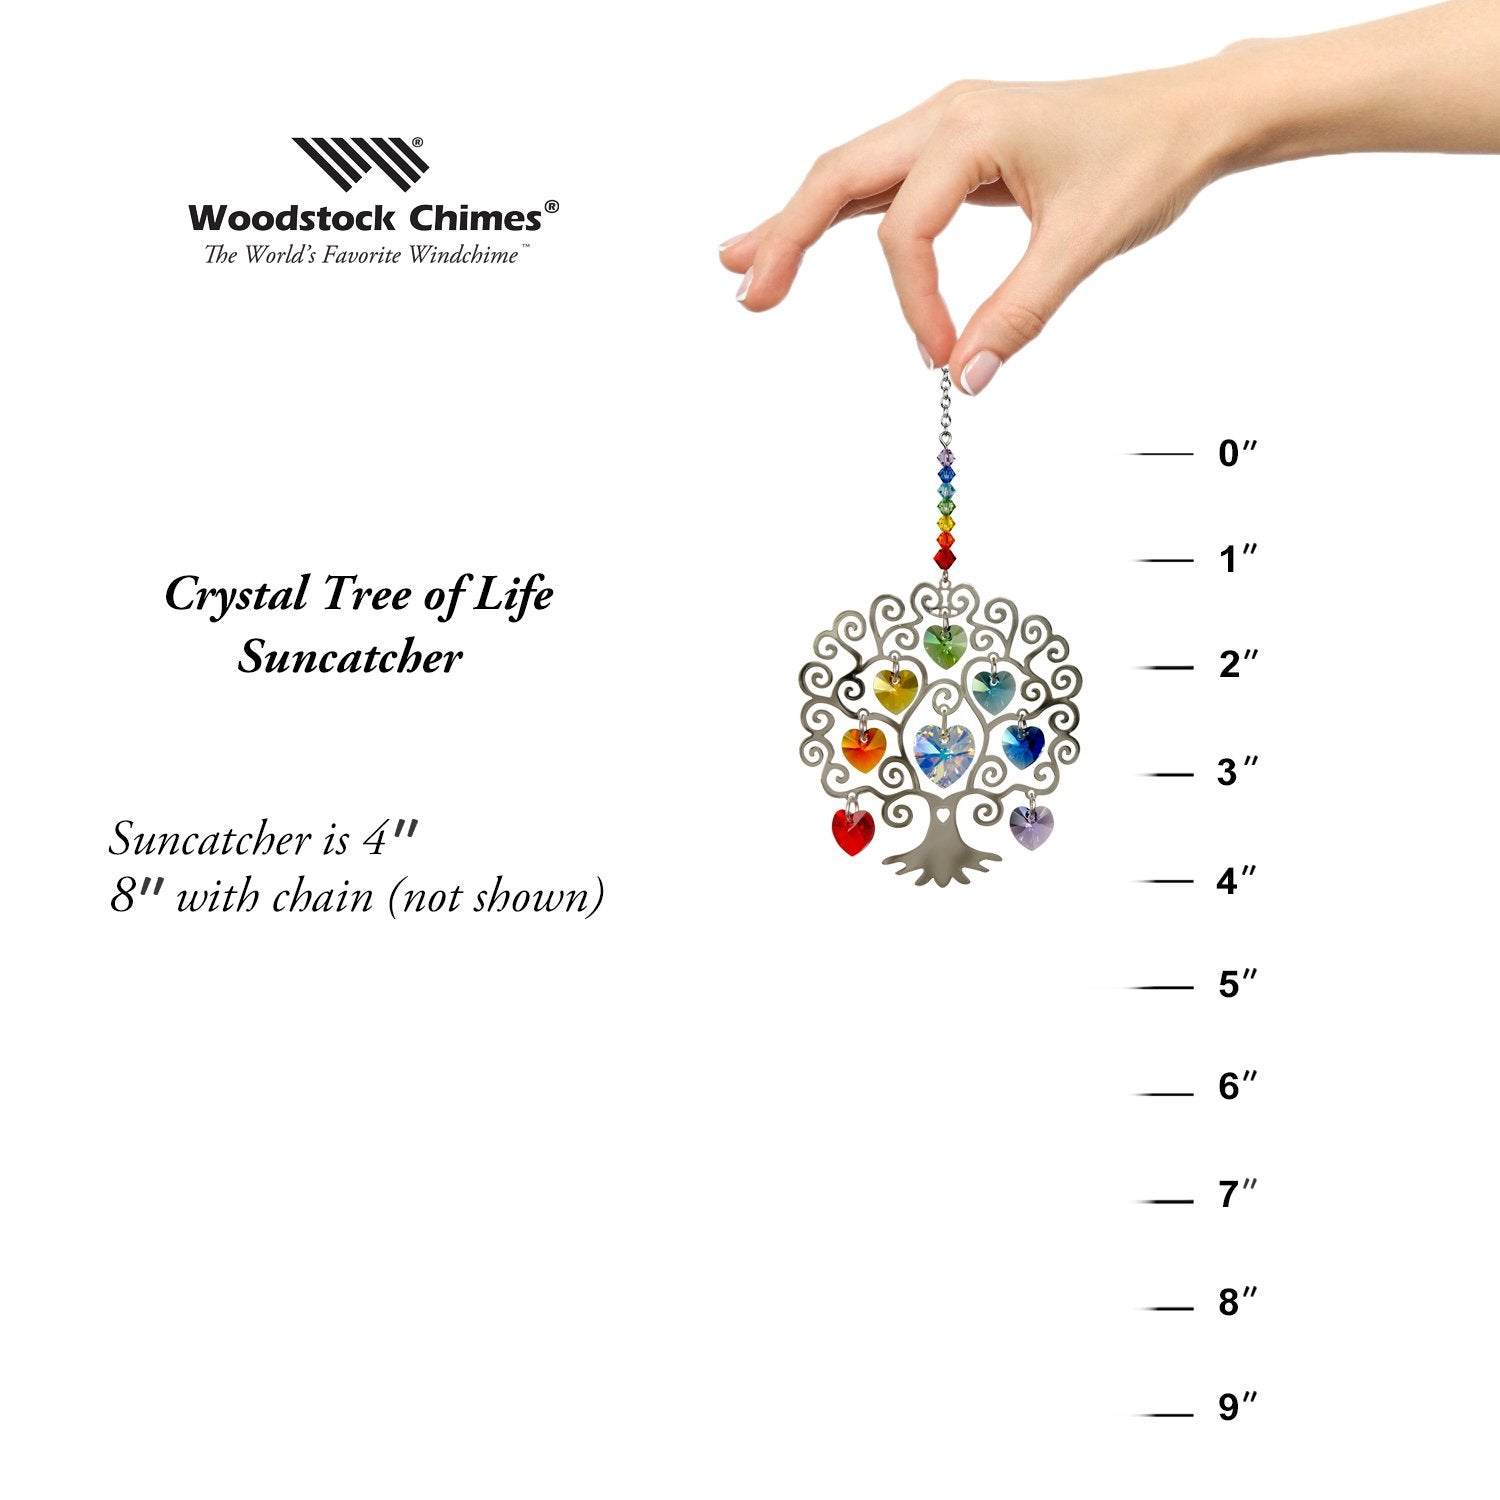 Crystal Tree of Life proportion image